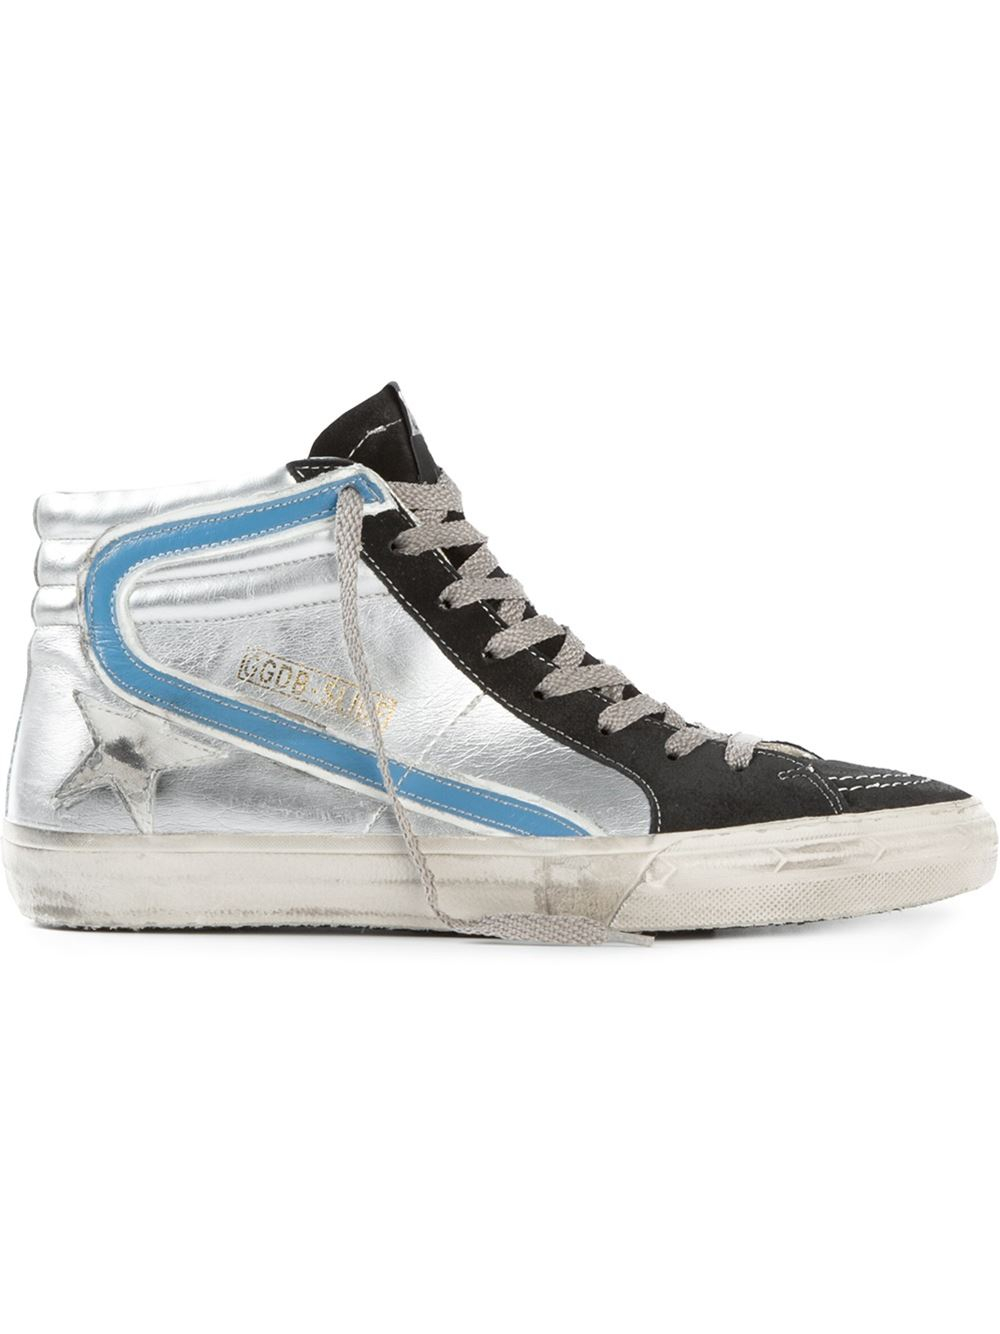 golden goose deluxe brand slide metallic leather high top sneakers in silver for men metallic. Black Bedroom Furniture Sets. Home Design Ideas